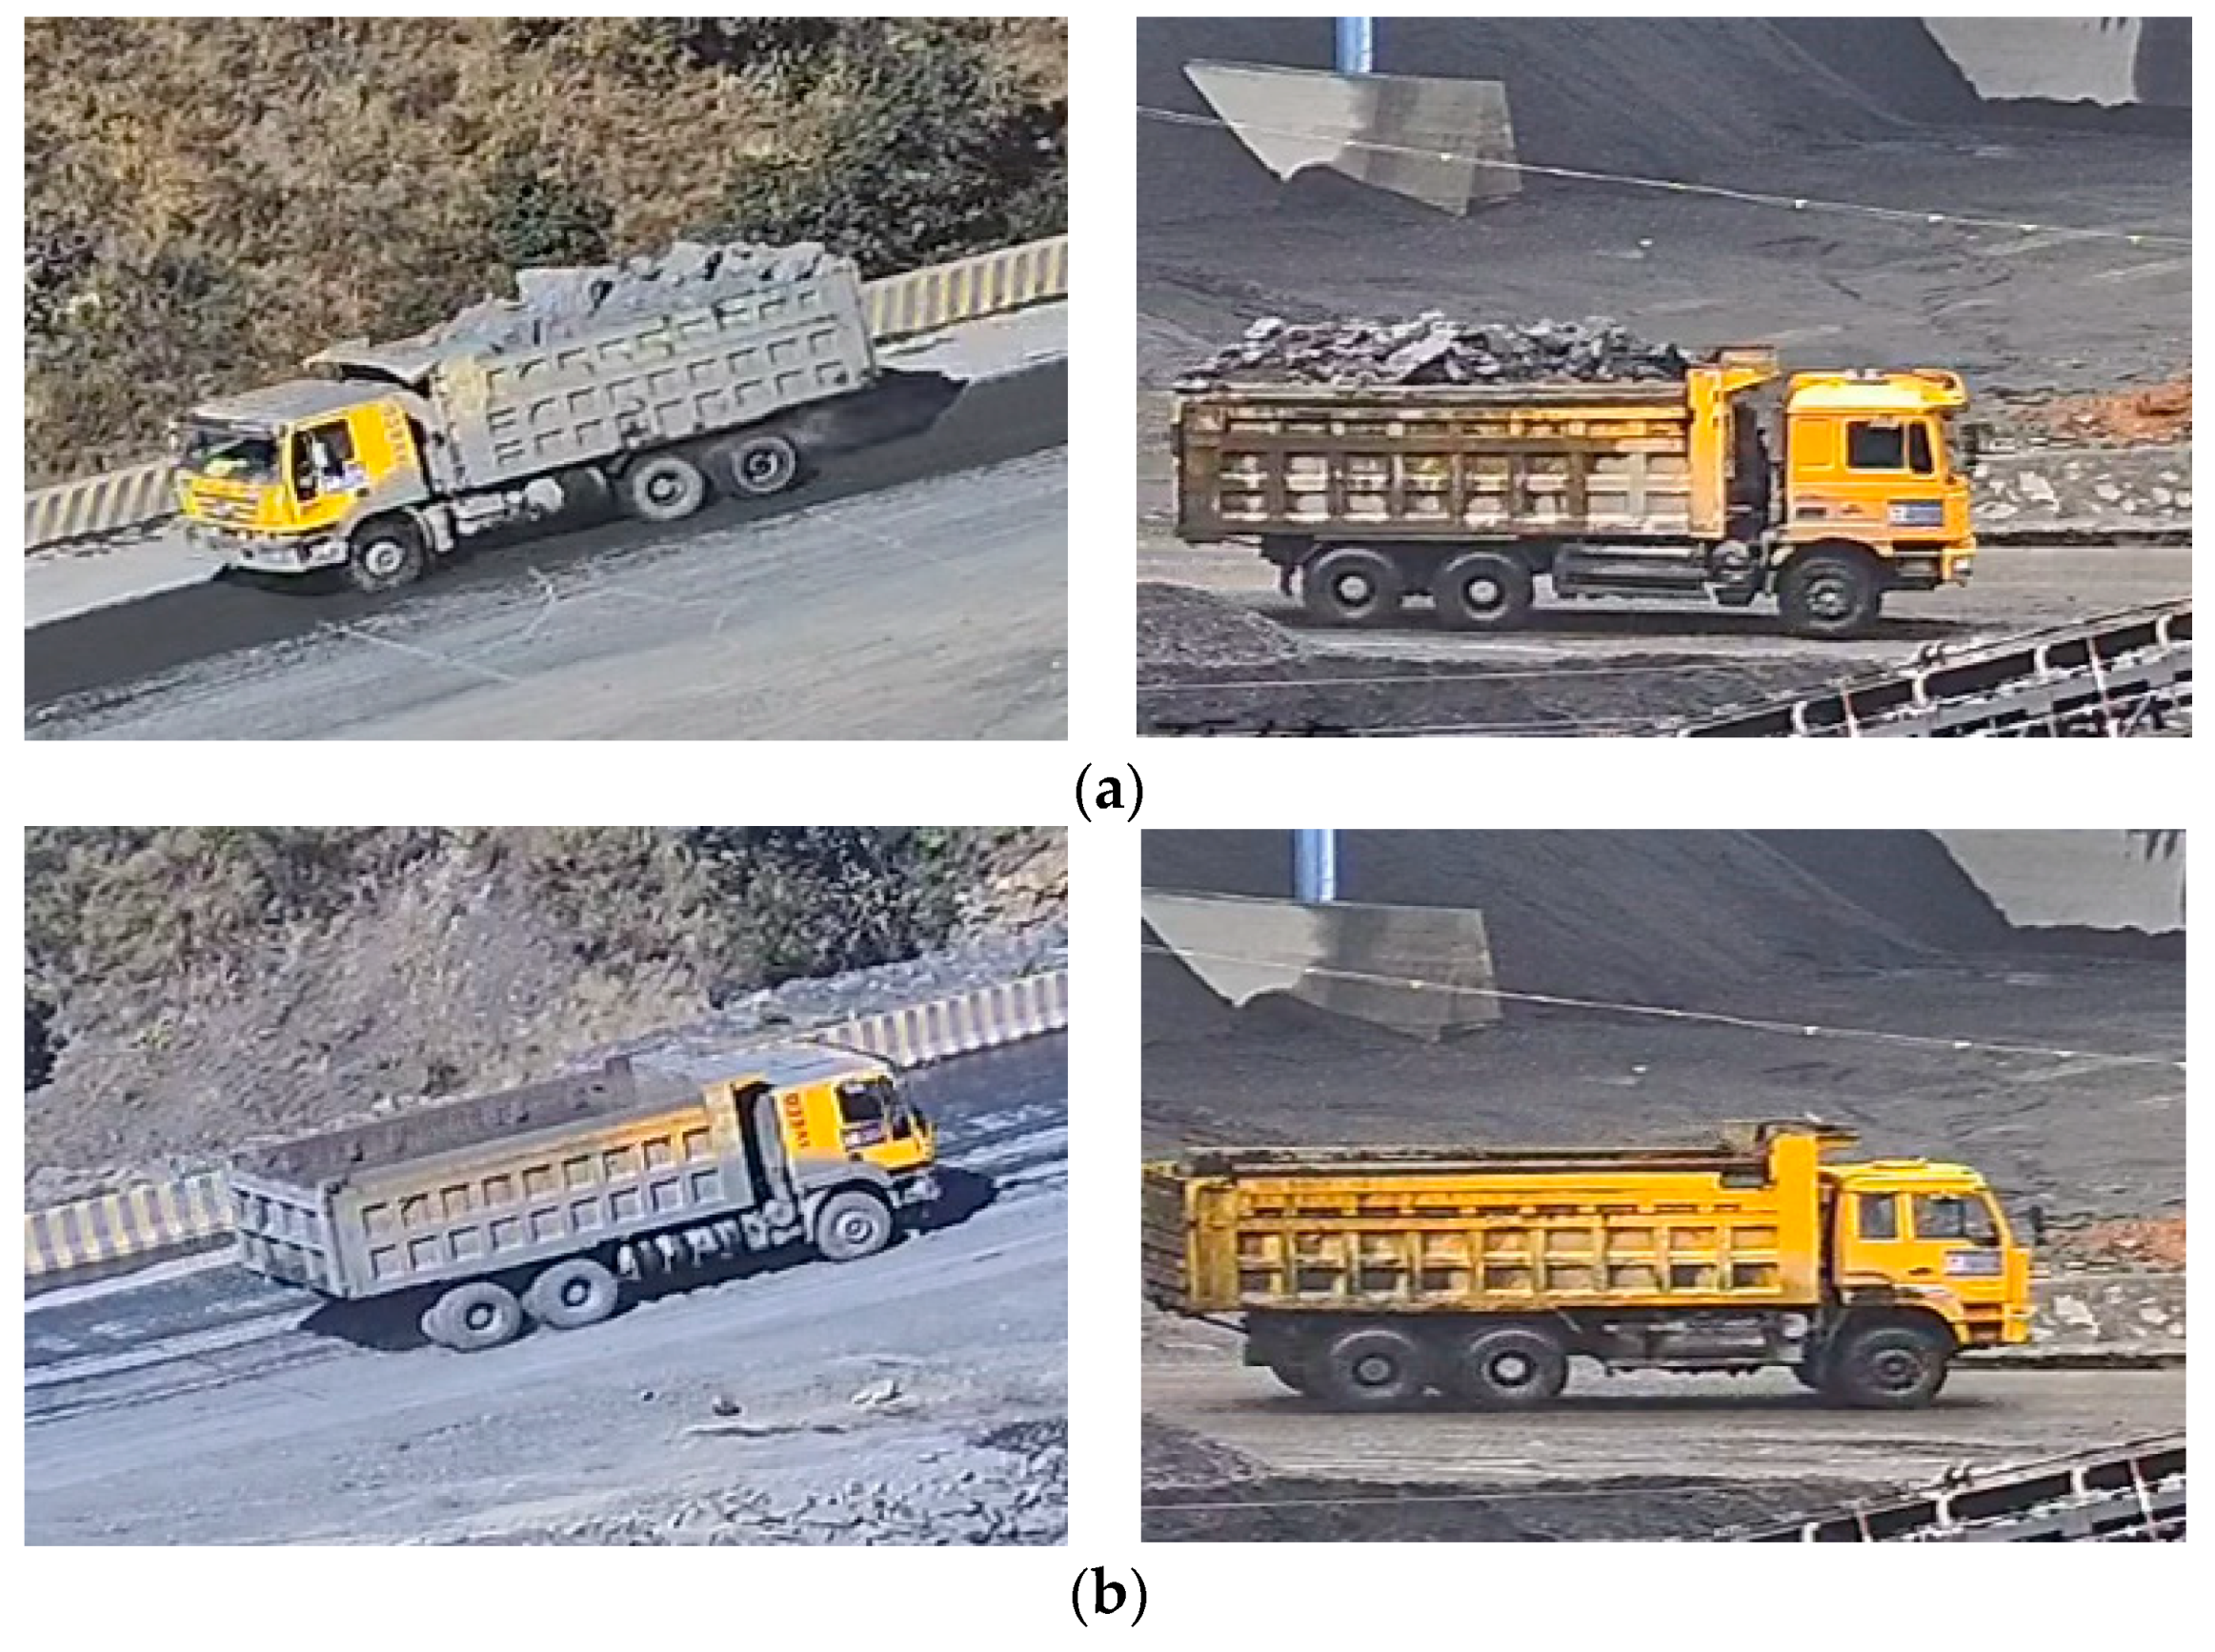 Applied Sciences Free Full Text Deep Learning Model Comparison For Vision Based Classification Of Full Empty Load Trucks In Earthmoving Operations Html